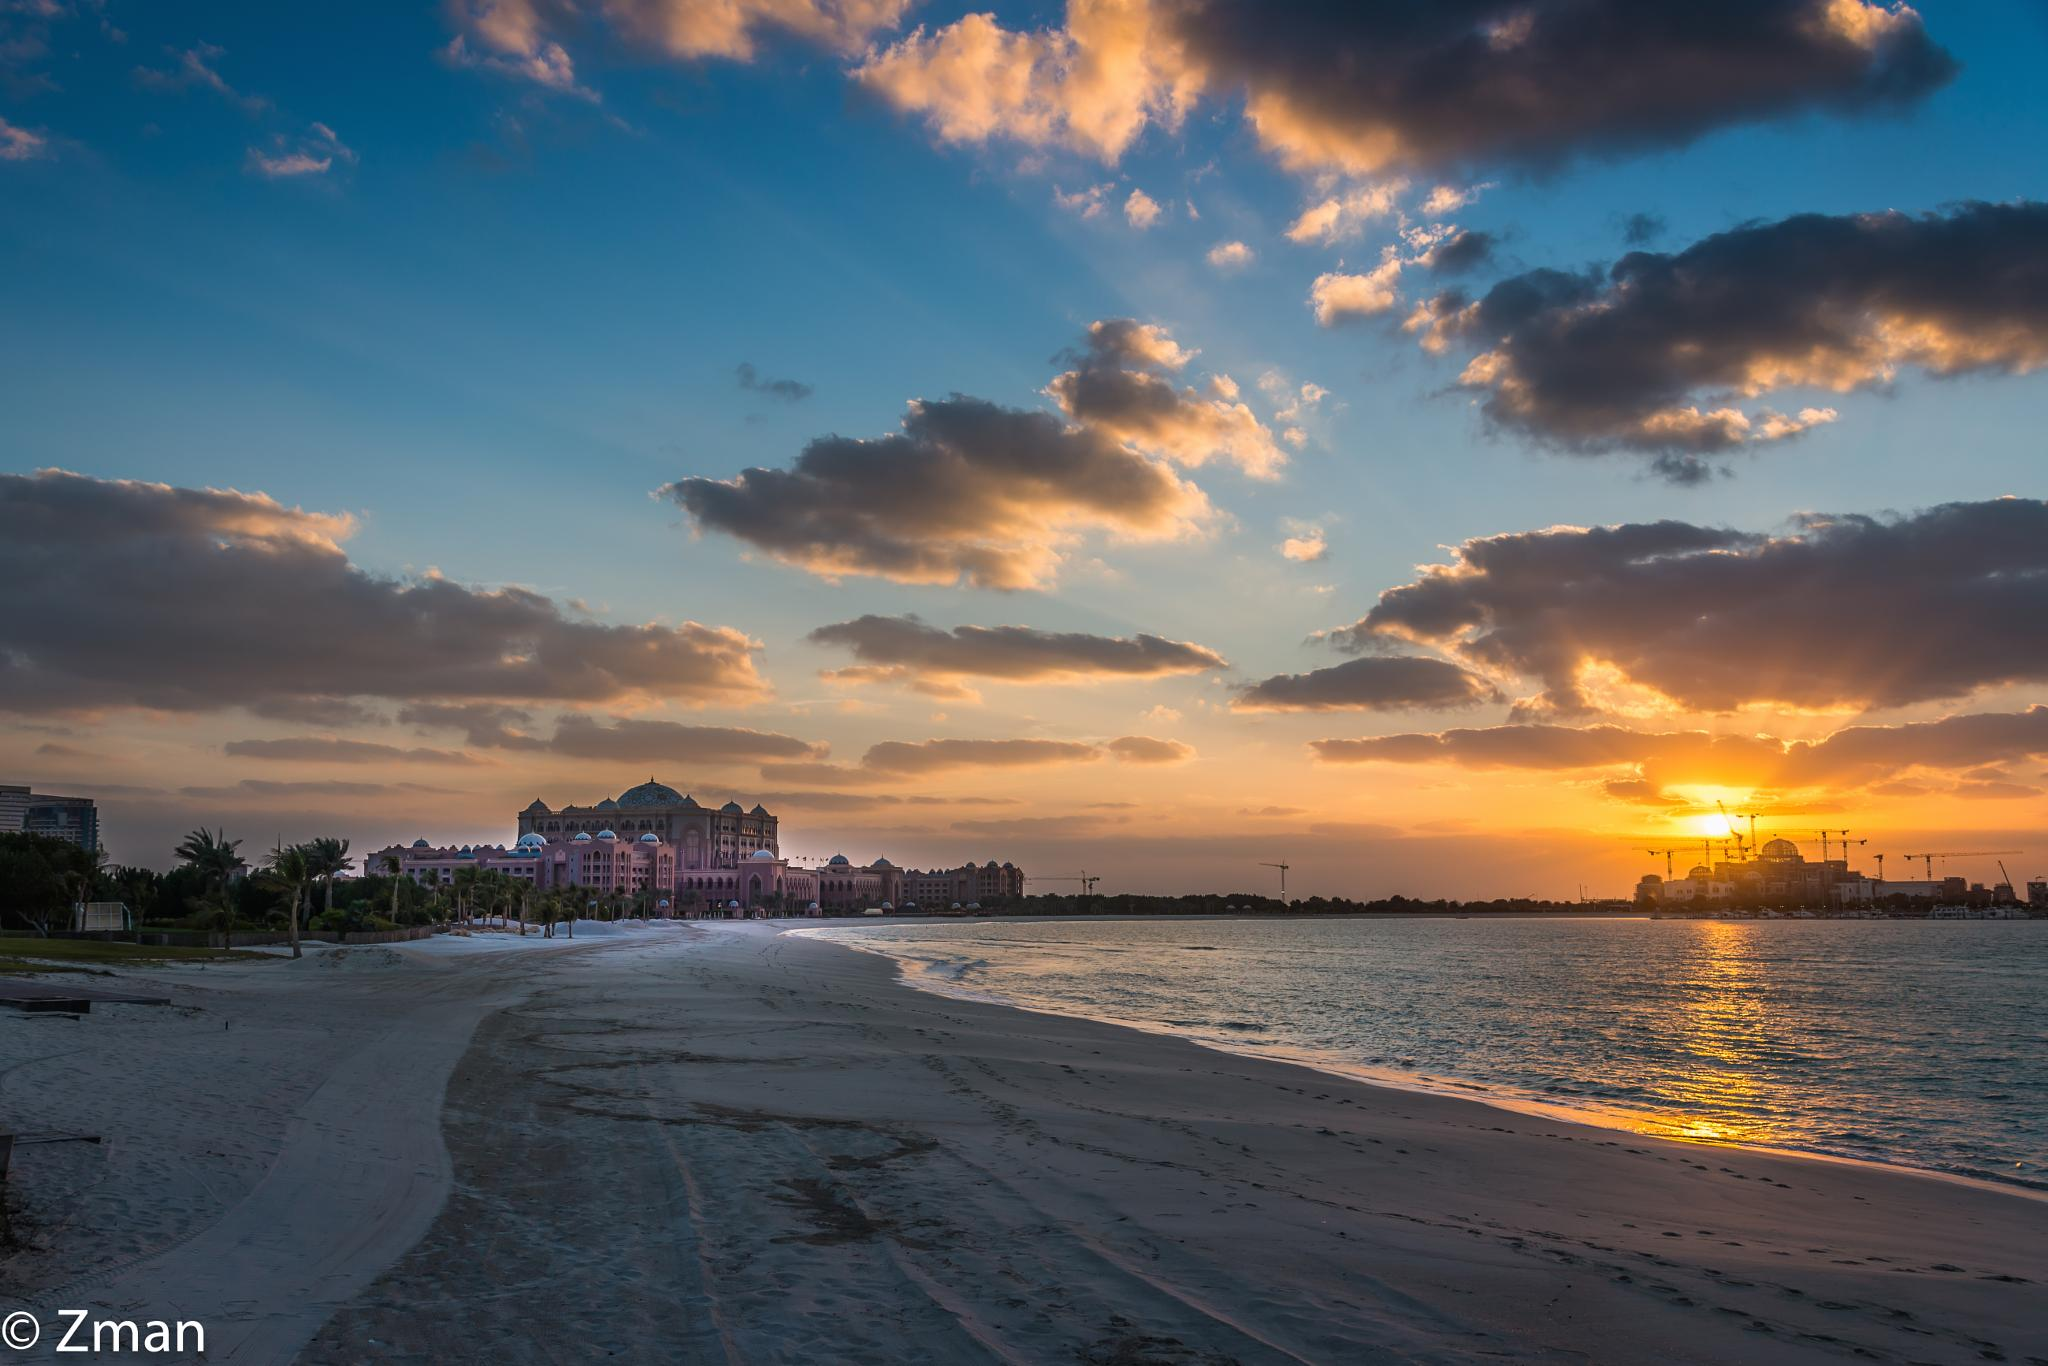 The Emirates Conference Palace Hotel and Beach by muhammad.nasser.963